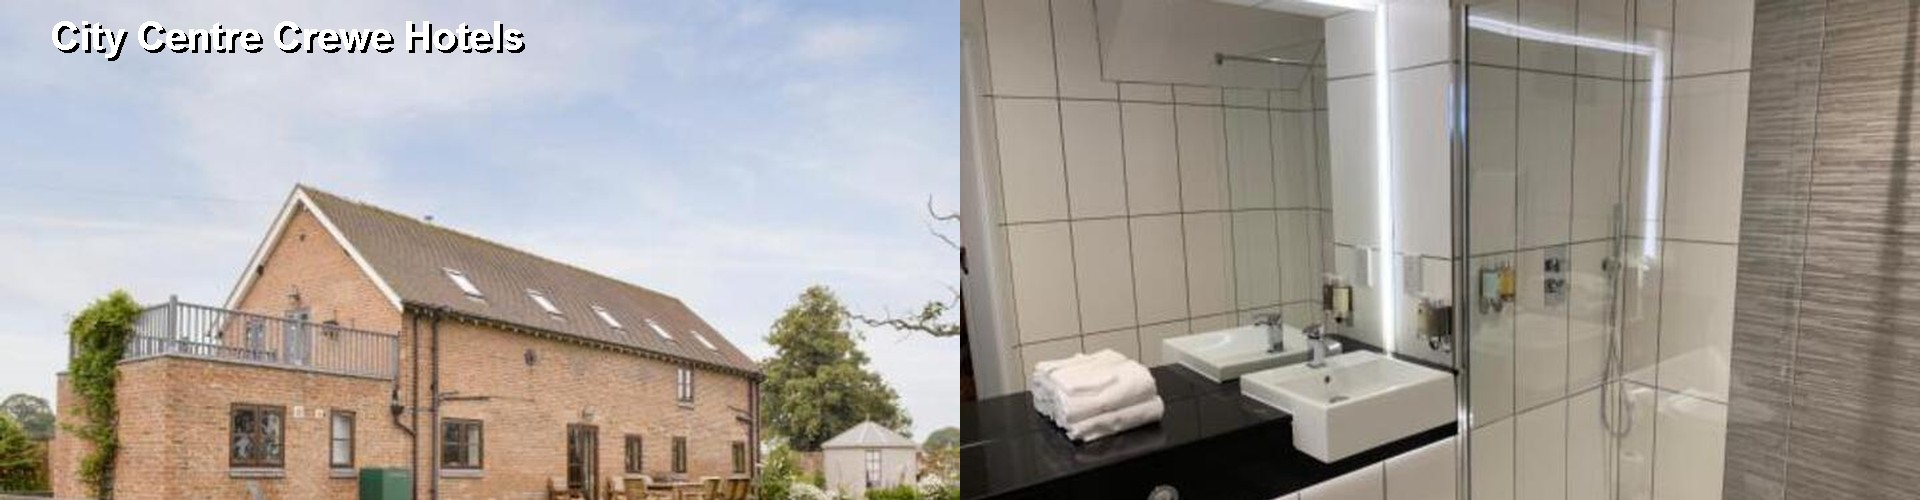 5 Best Hotels near City Centre Crewe